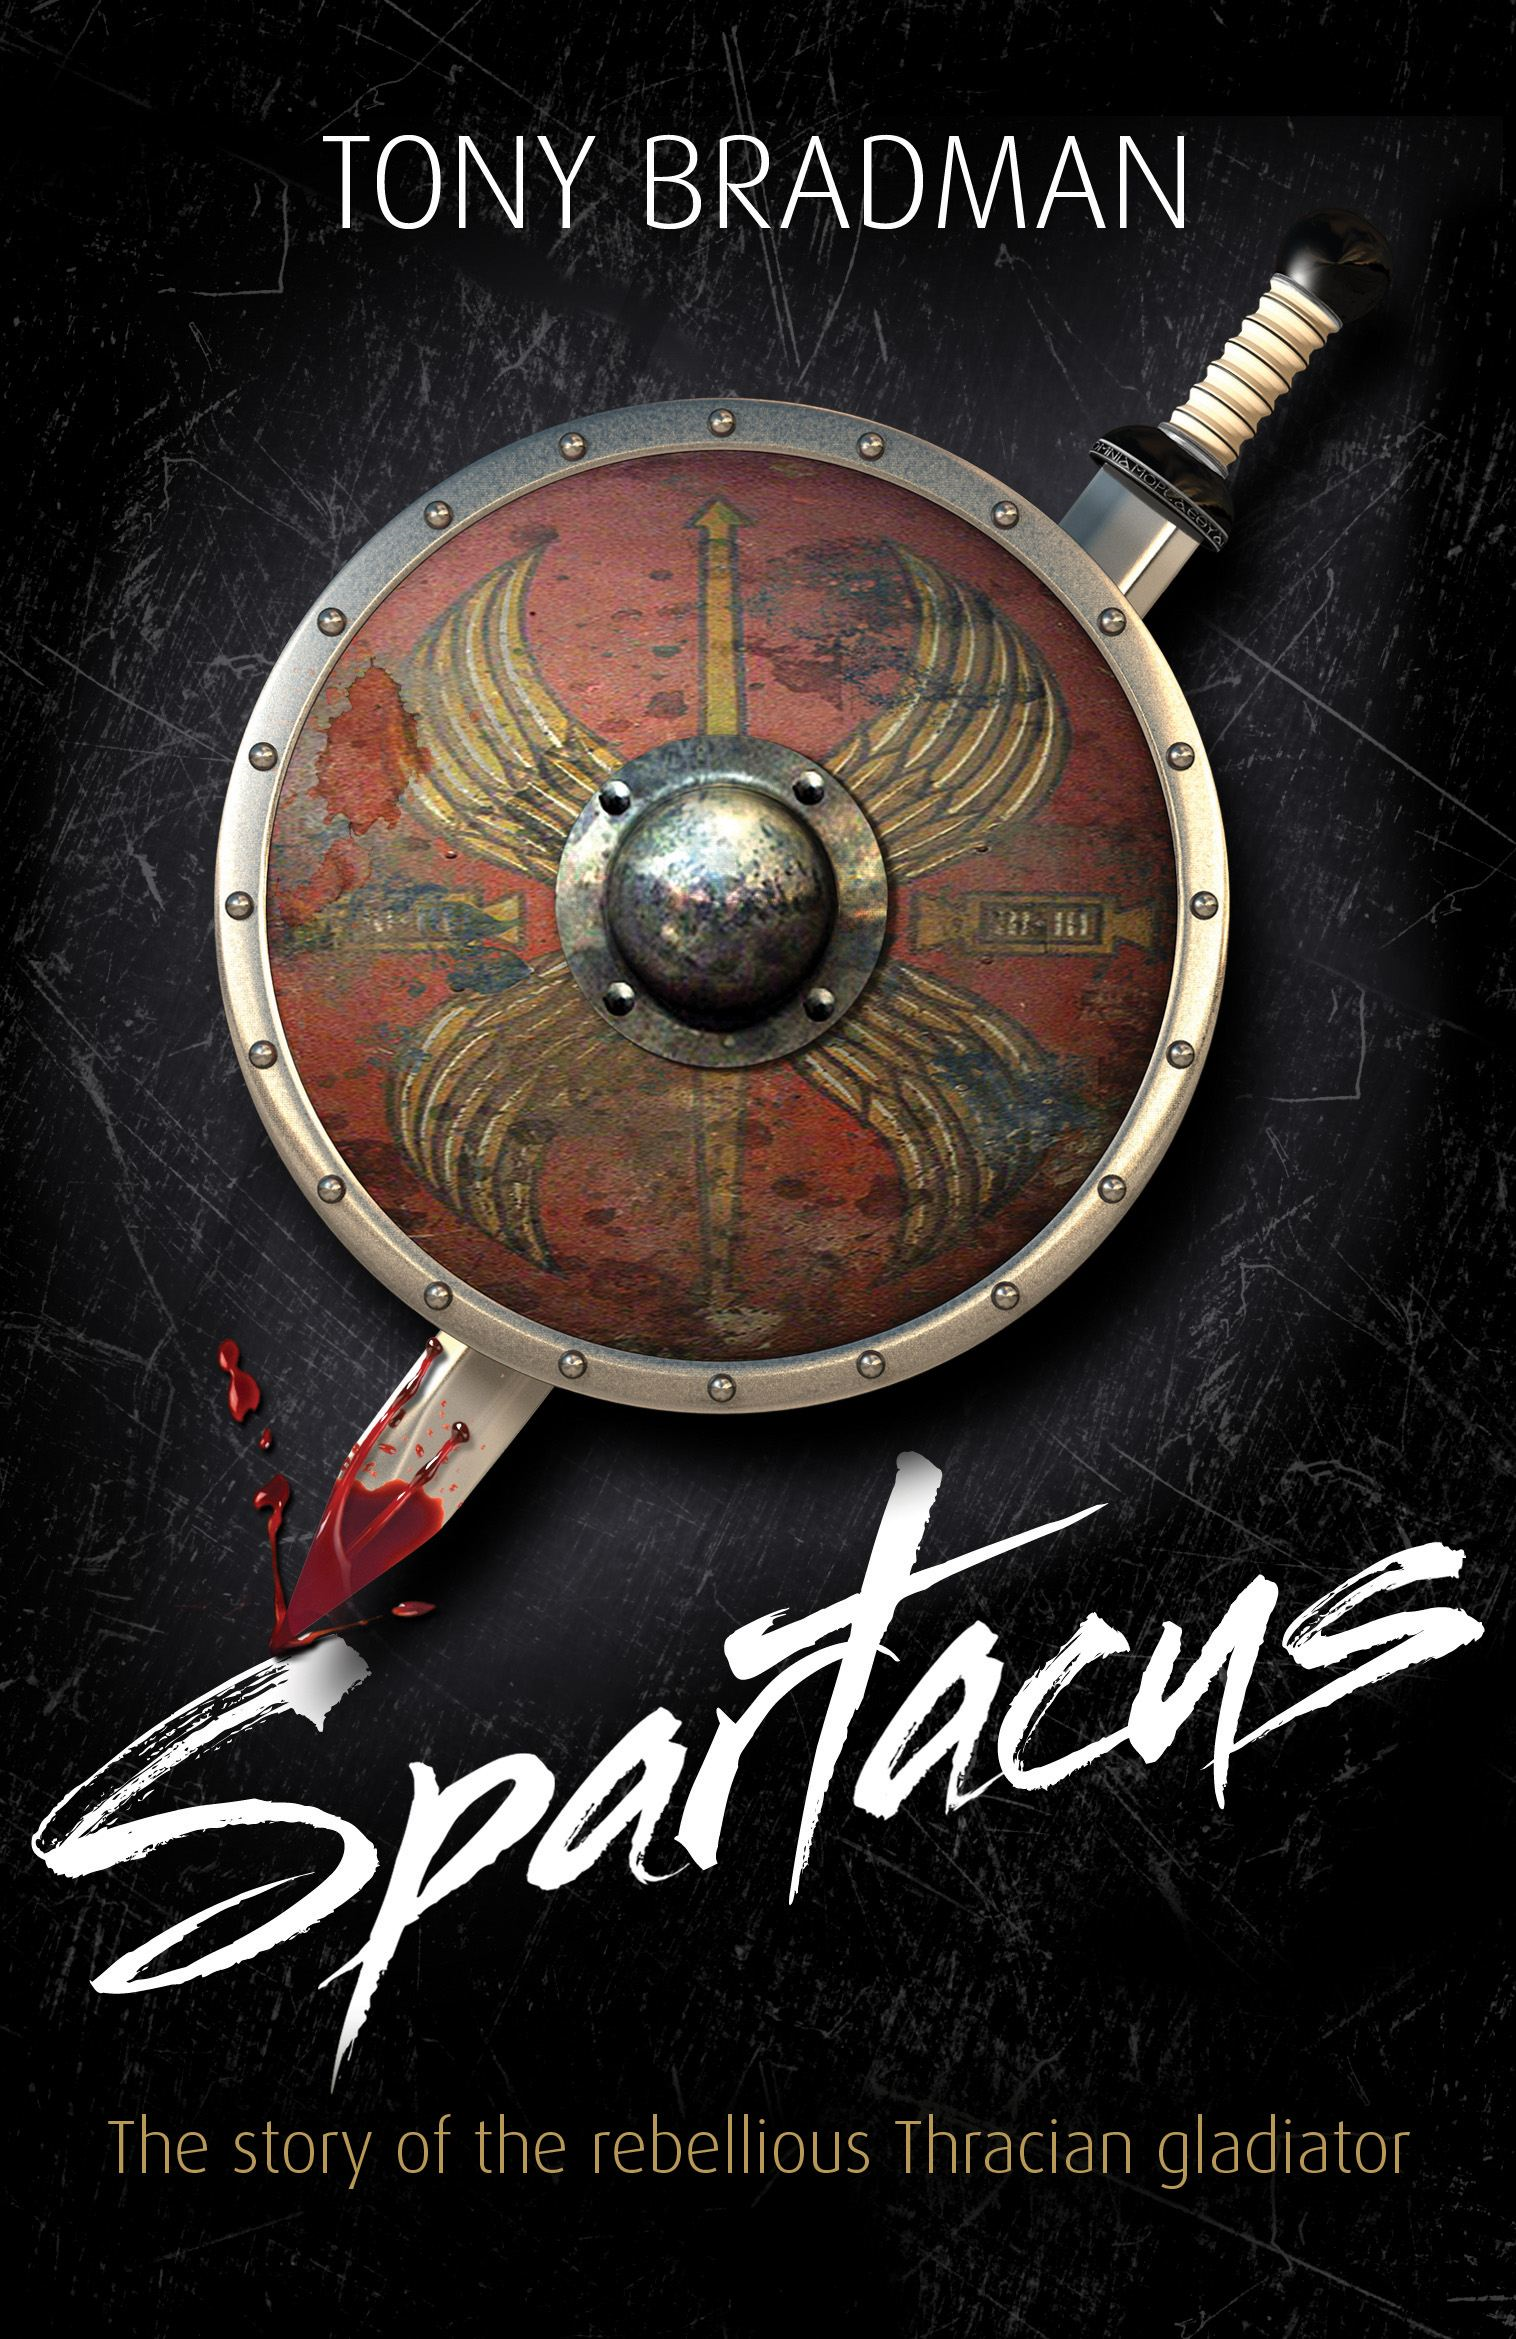 Spartacus: The Story of the Rebellious Thracian Gladiator By: Tony Bradman